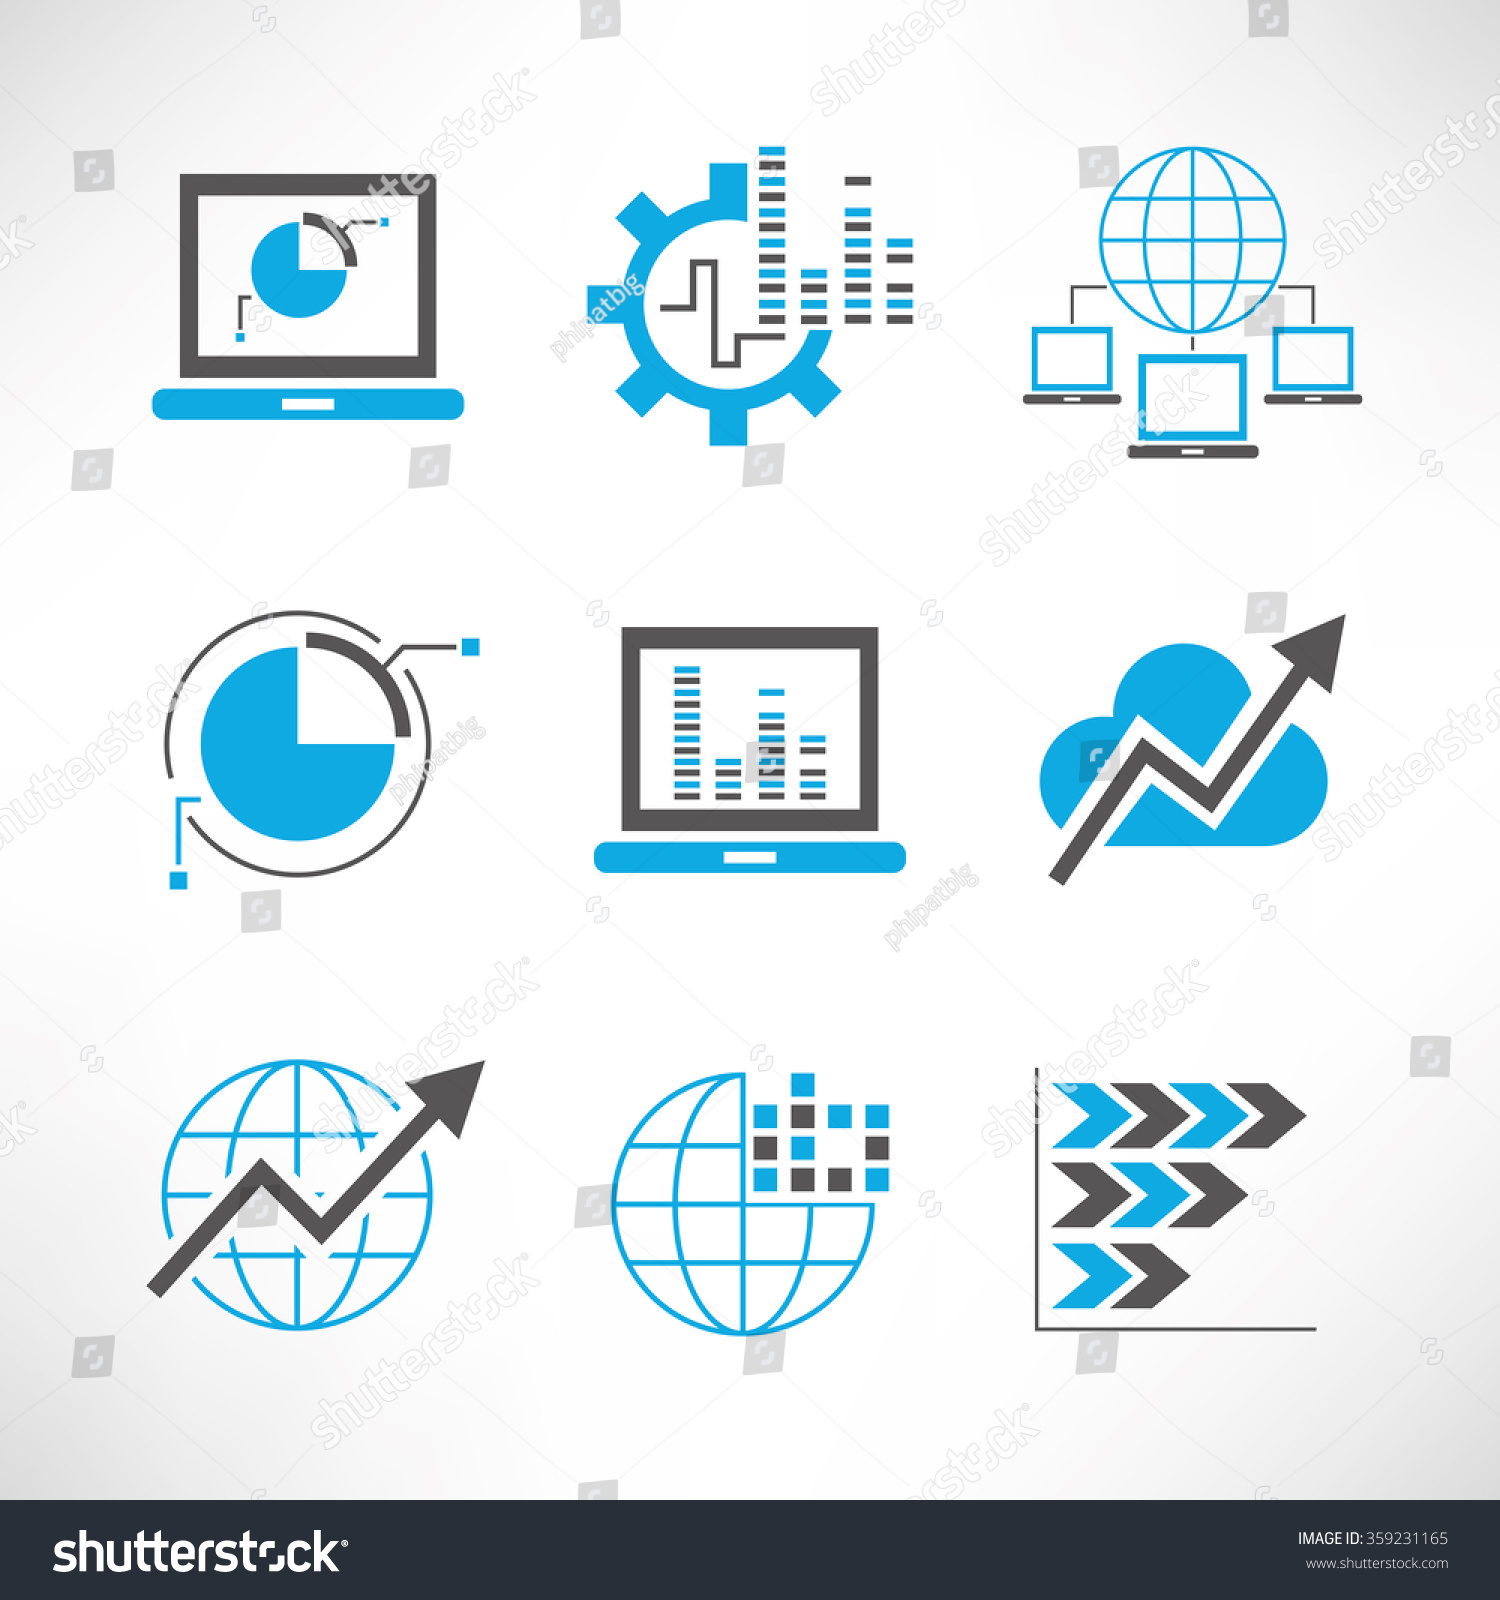 Network Analytics Icons Information Technology Concept Stock Vector ...